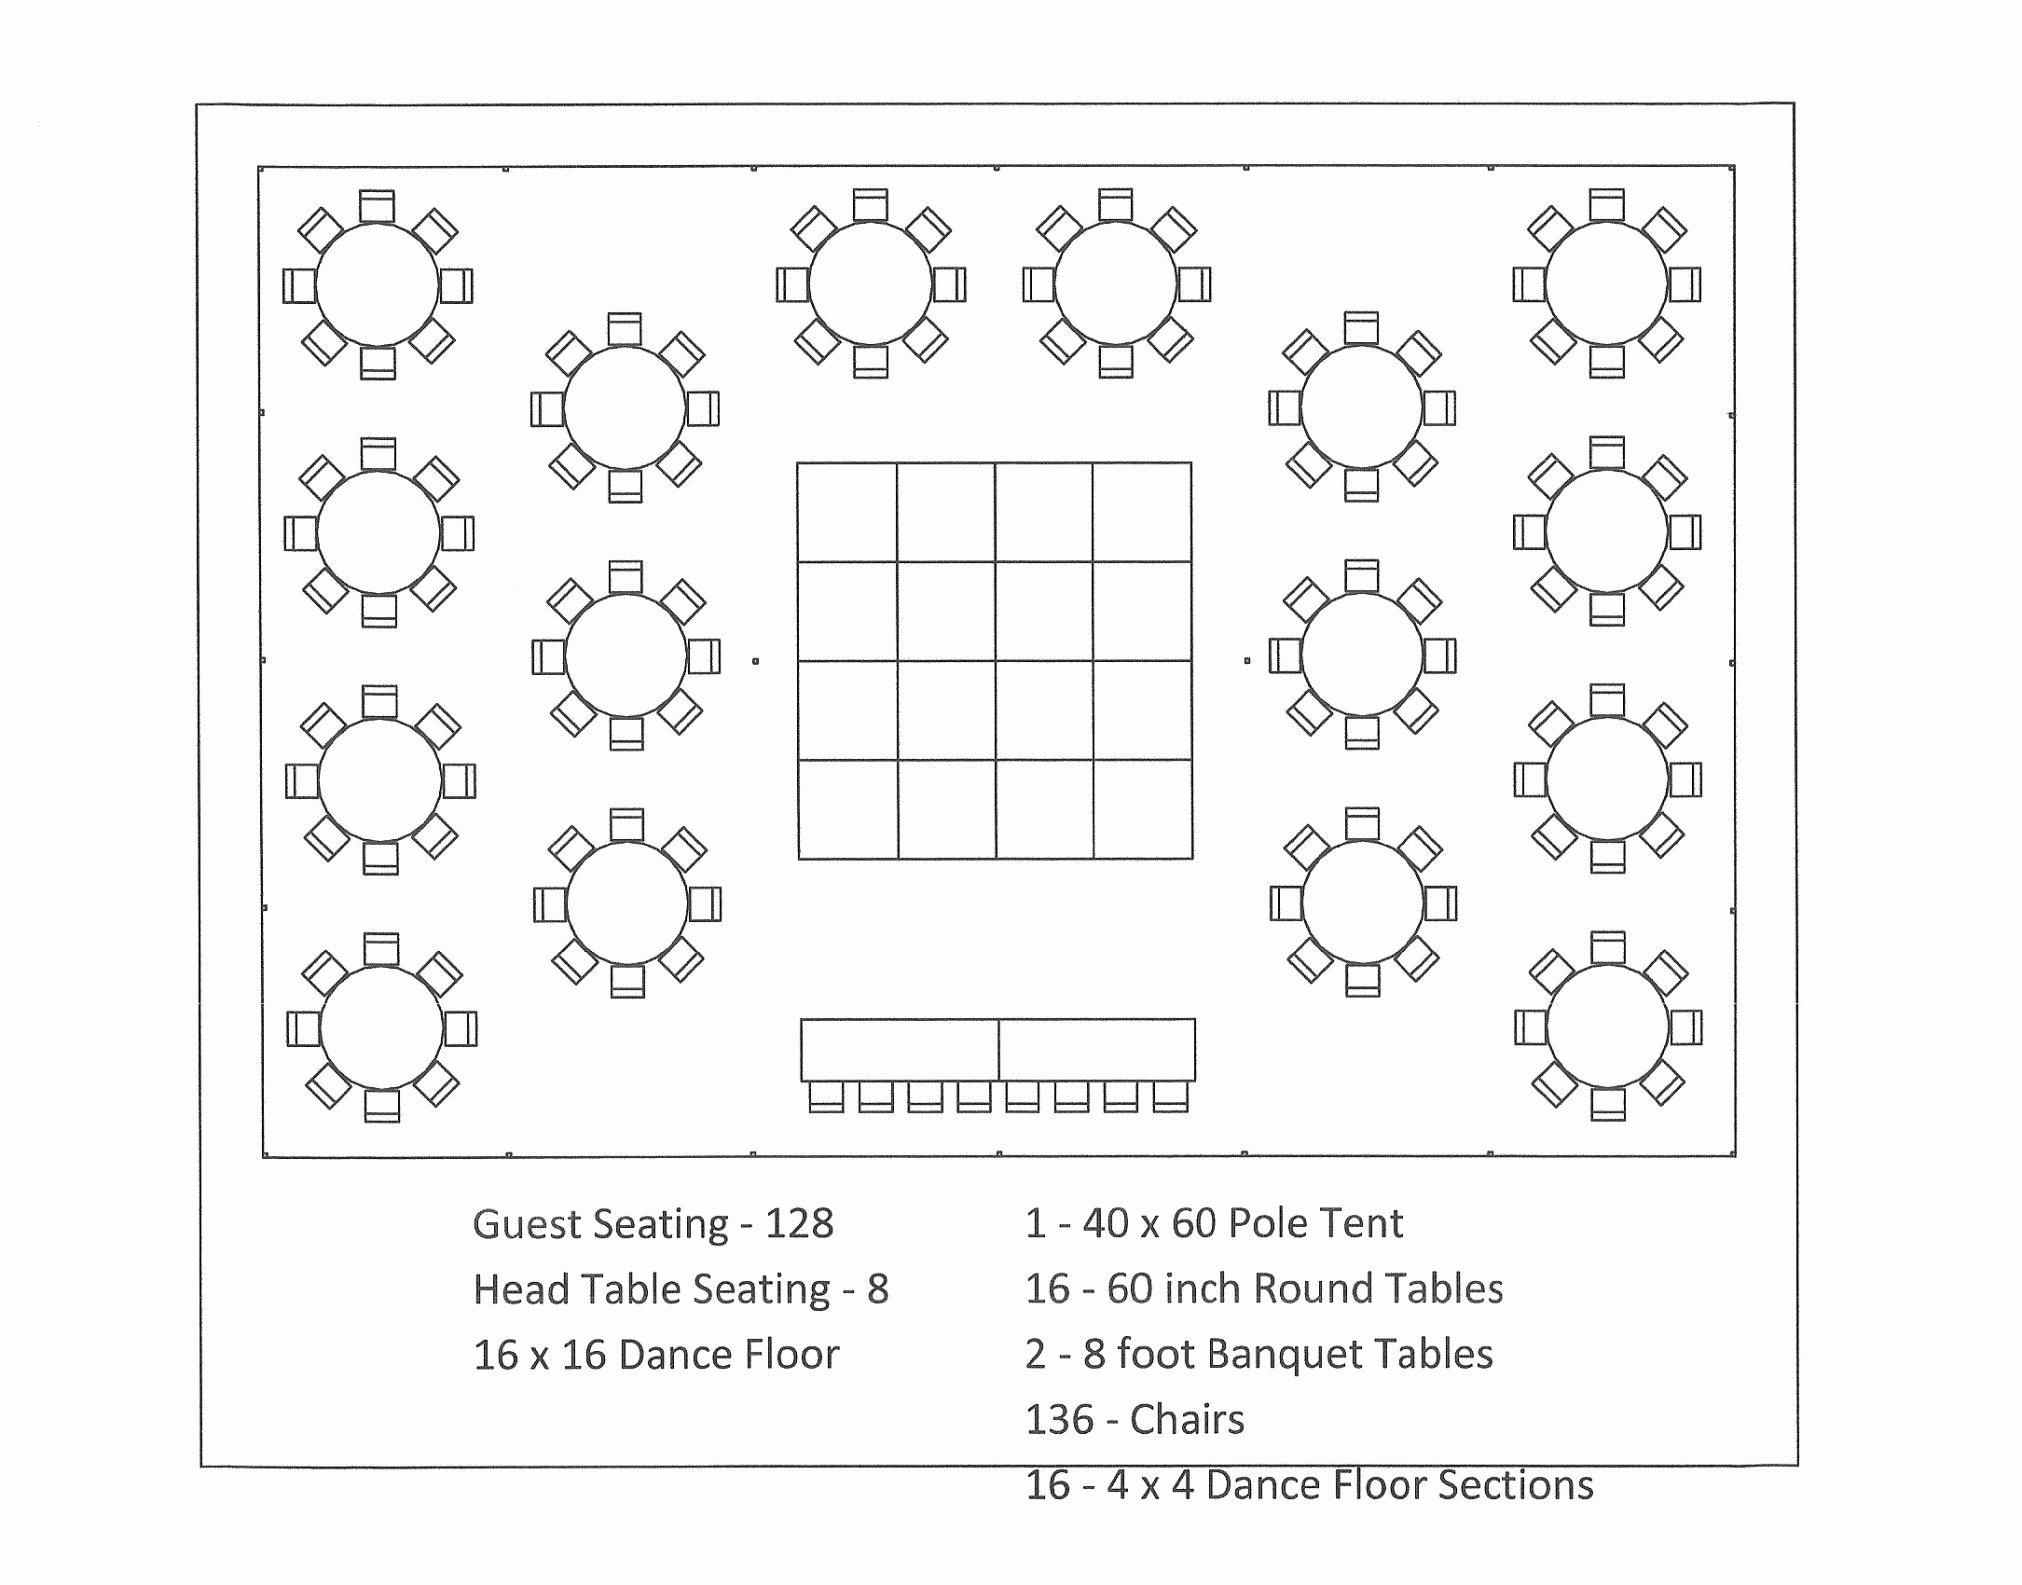 Seating Chart Template Word Best Of Free Table Of Reception & Wedding Seating Chart Template